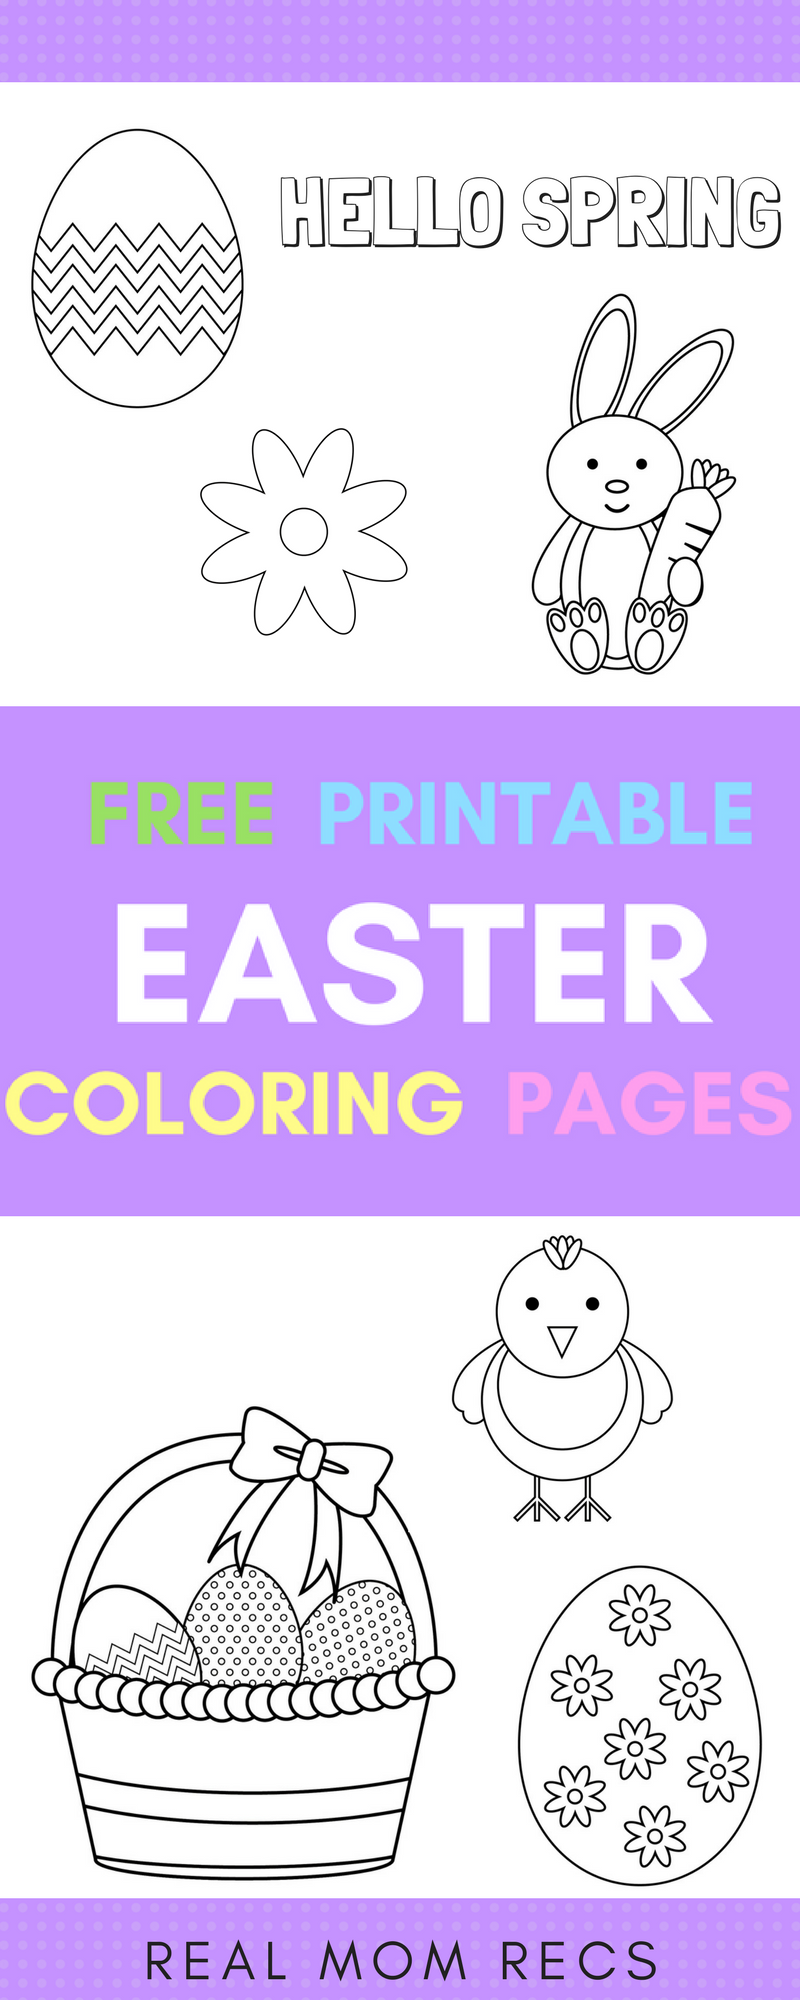 4 Free Printable Easter Coloring Pages Just Download And Print Cute Easy Designs